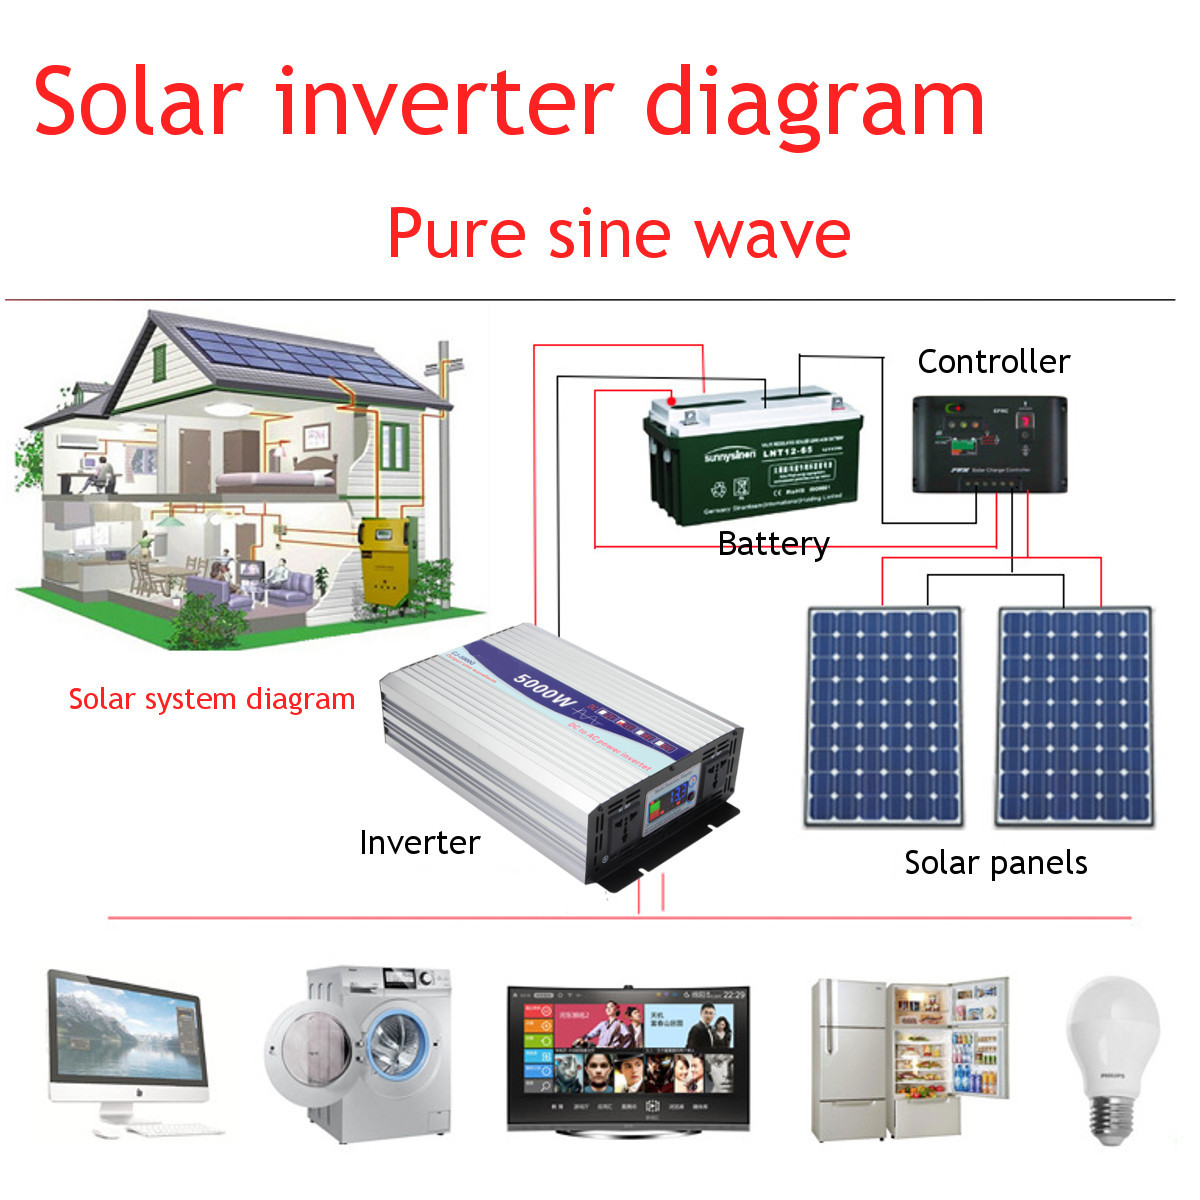 Intelligent Screen Pure Sine Wave Power Inverter 12v 24v To 220v Circuit Diagram In Addition Dual Cooling Fans Extend The Life Of Universal Three Hole Socket Strong Compatibilitymost Appliances Are Suitable